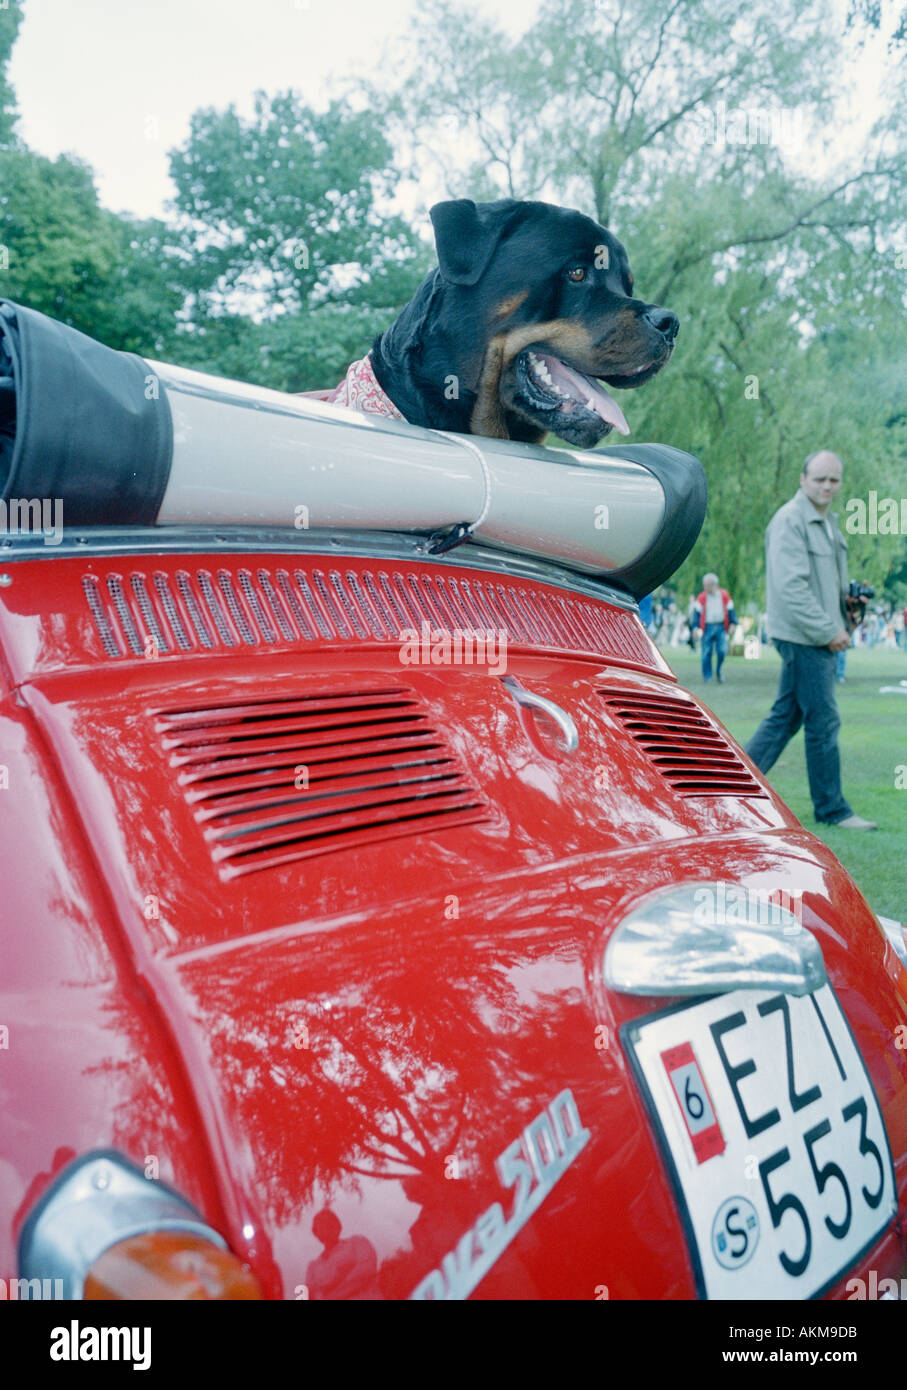 a red car including a folding top and a rottweiler  - Stock Image